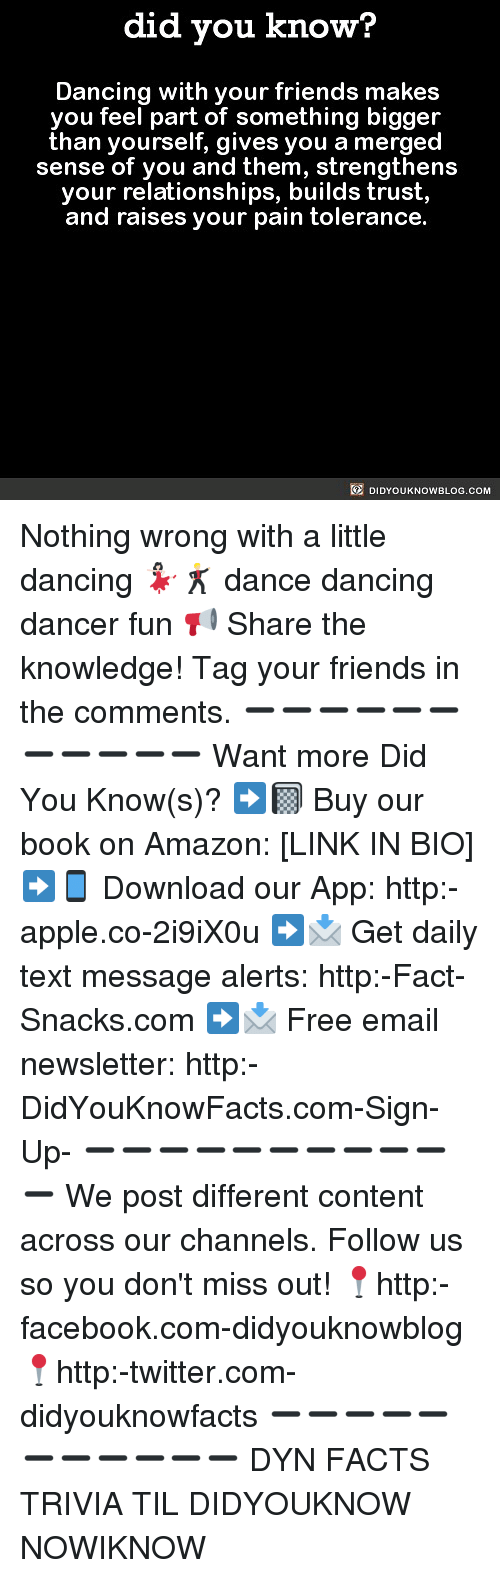 Amazon, Apple, and Dancing: did you know?  Dancing with your friends makes  you feel part of something bigger  than yourself, gives you a merged  sense of you and them, strengthens  your relationships, builds trust,  and raises your pain tolerance  DIDYOUKNOWBLOG.COM Nothing wrong with a little dancing 💃🏻🕺🏼 dance dancing dancer fun 📢 Share the knowledge! Tag your friends in the comments. ➖➖➖➖➖➖➖➖➖➖➖ Want more Did You Know(s)? ➡📓 Buy our book on Amazon: [LINK IN BIO] ➡📱 Download our App: http:-apple.co-2i9iX0u ➡📩 Get daily text message alerts: http:-Fact-Snacks.com ➡📩 Free email newsletter: http:-DidYouKnowFacts.com-Sign-Up- ➖➖➖➖➖➖➖➖➖➖➖ We post different content across our channels. Follow us so you don't miss out! 📍http:-facebook.com-didyouknowblog 📍http:-twitter.com-didyouknowfacts ➖➖➖➖➖➖➖➖➖➖➖ DYN FACTS TRIVIA TIL DIDYOUKNOW NOWIKNOW